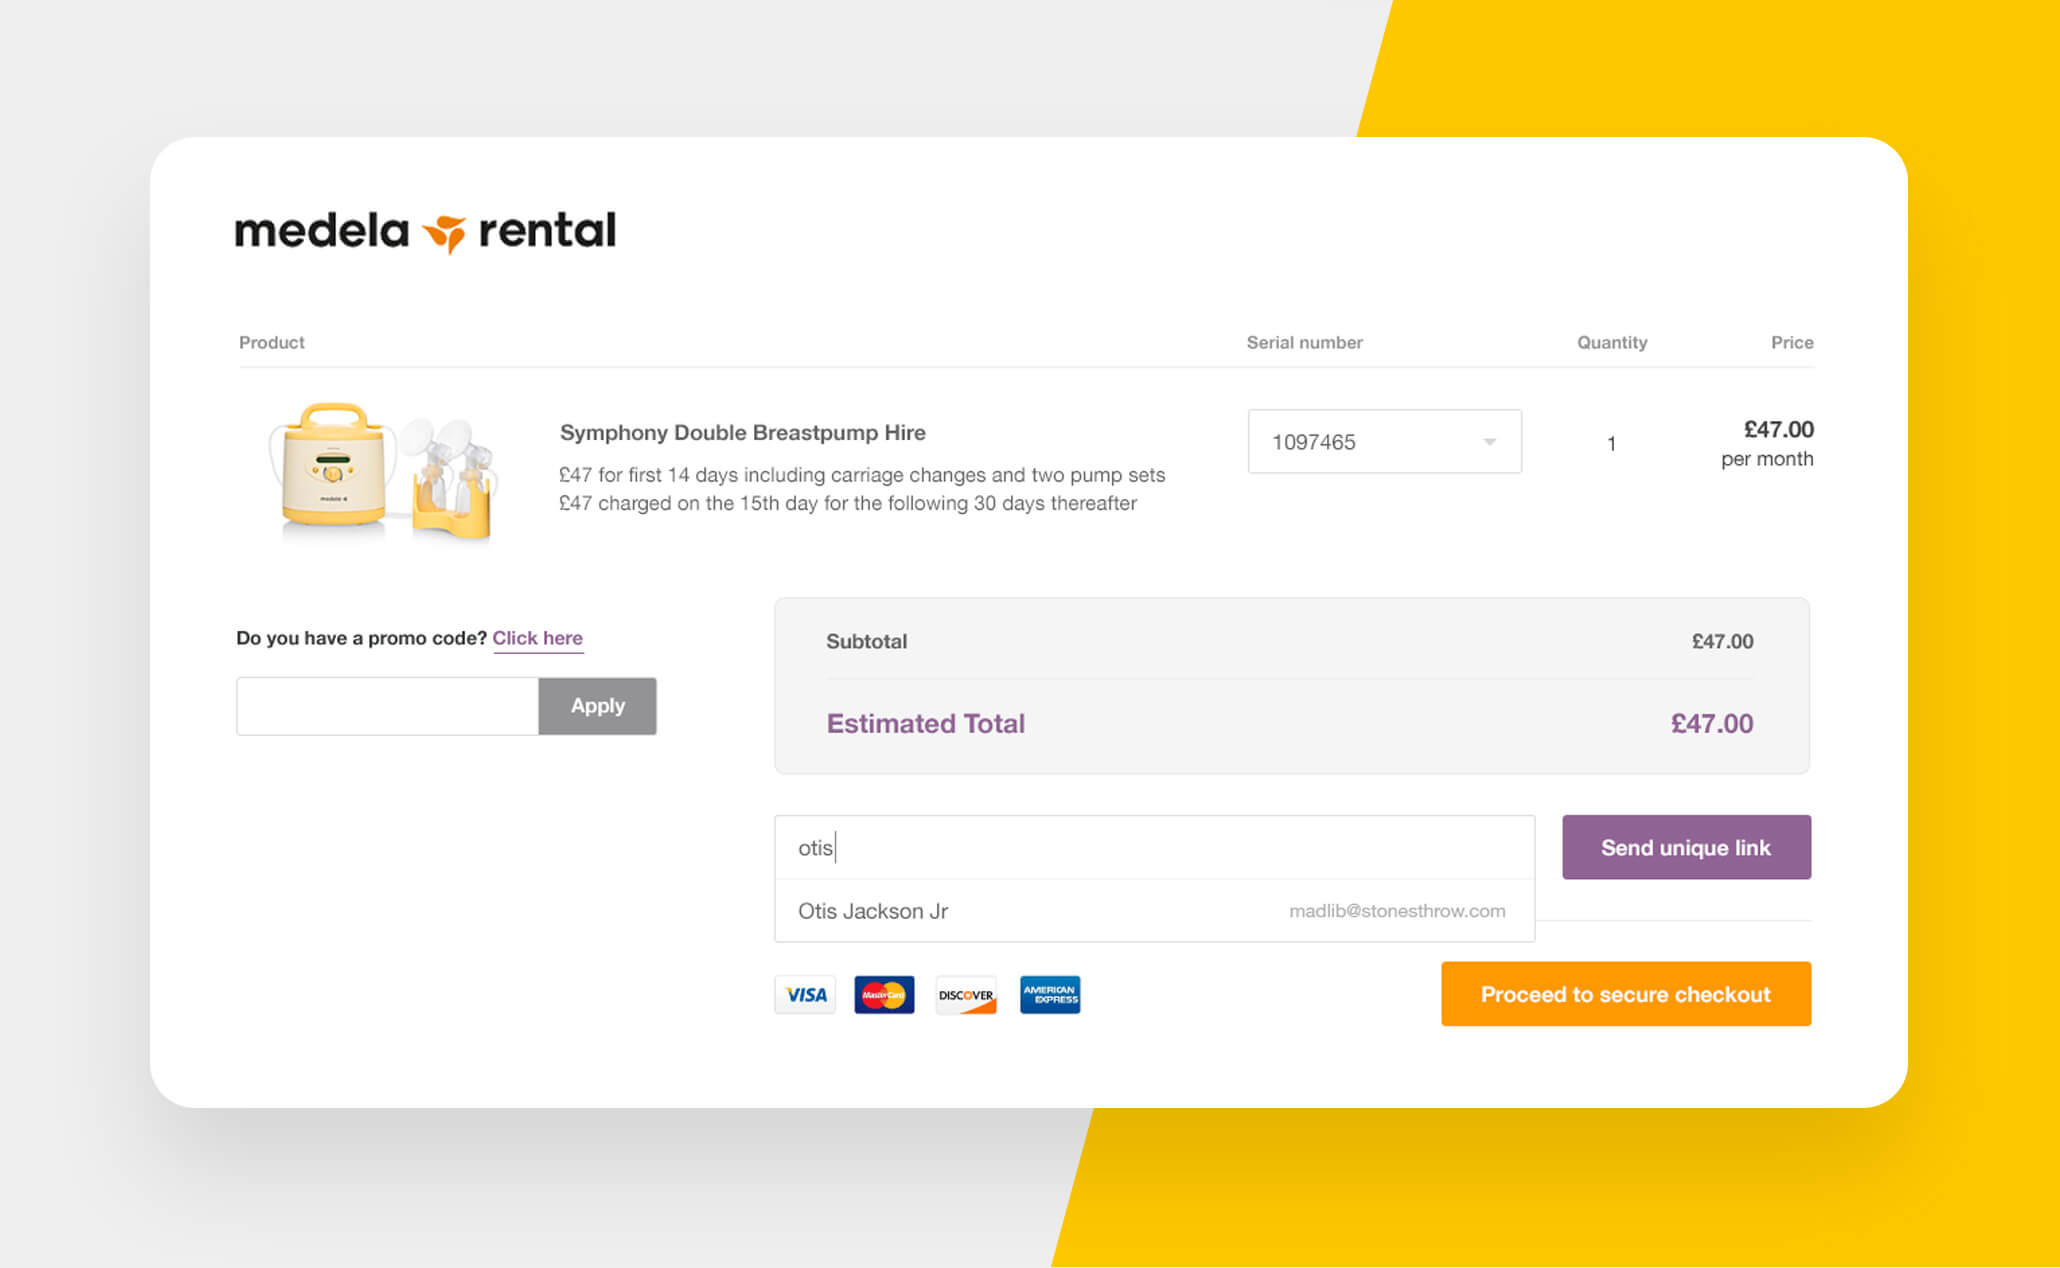 Medela Rental website project